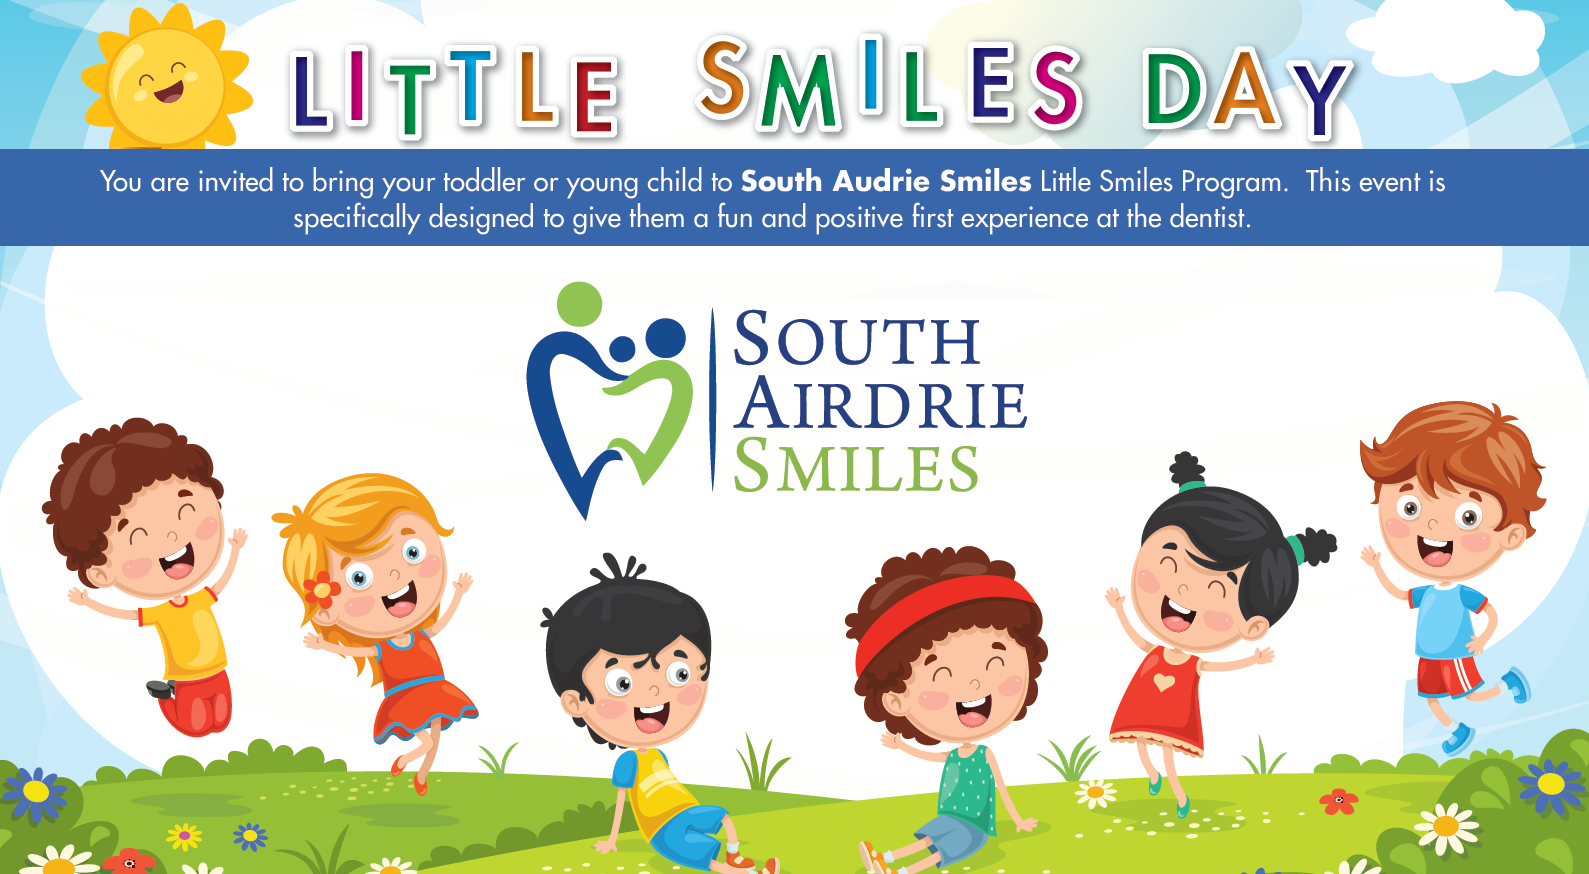 Little Smiles day